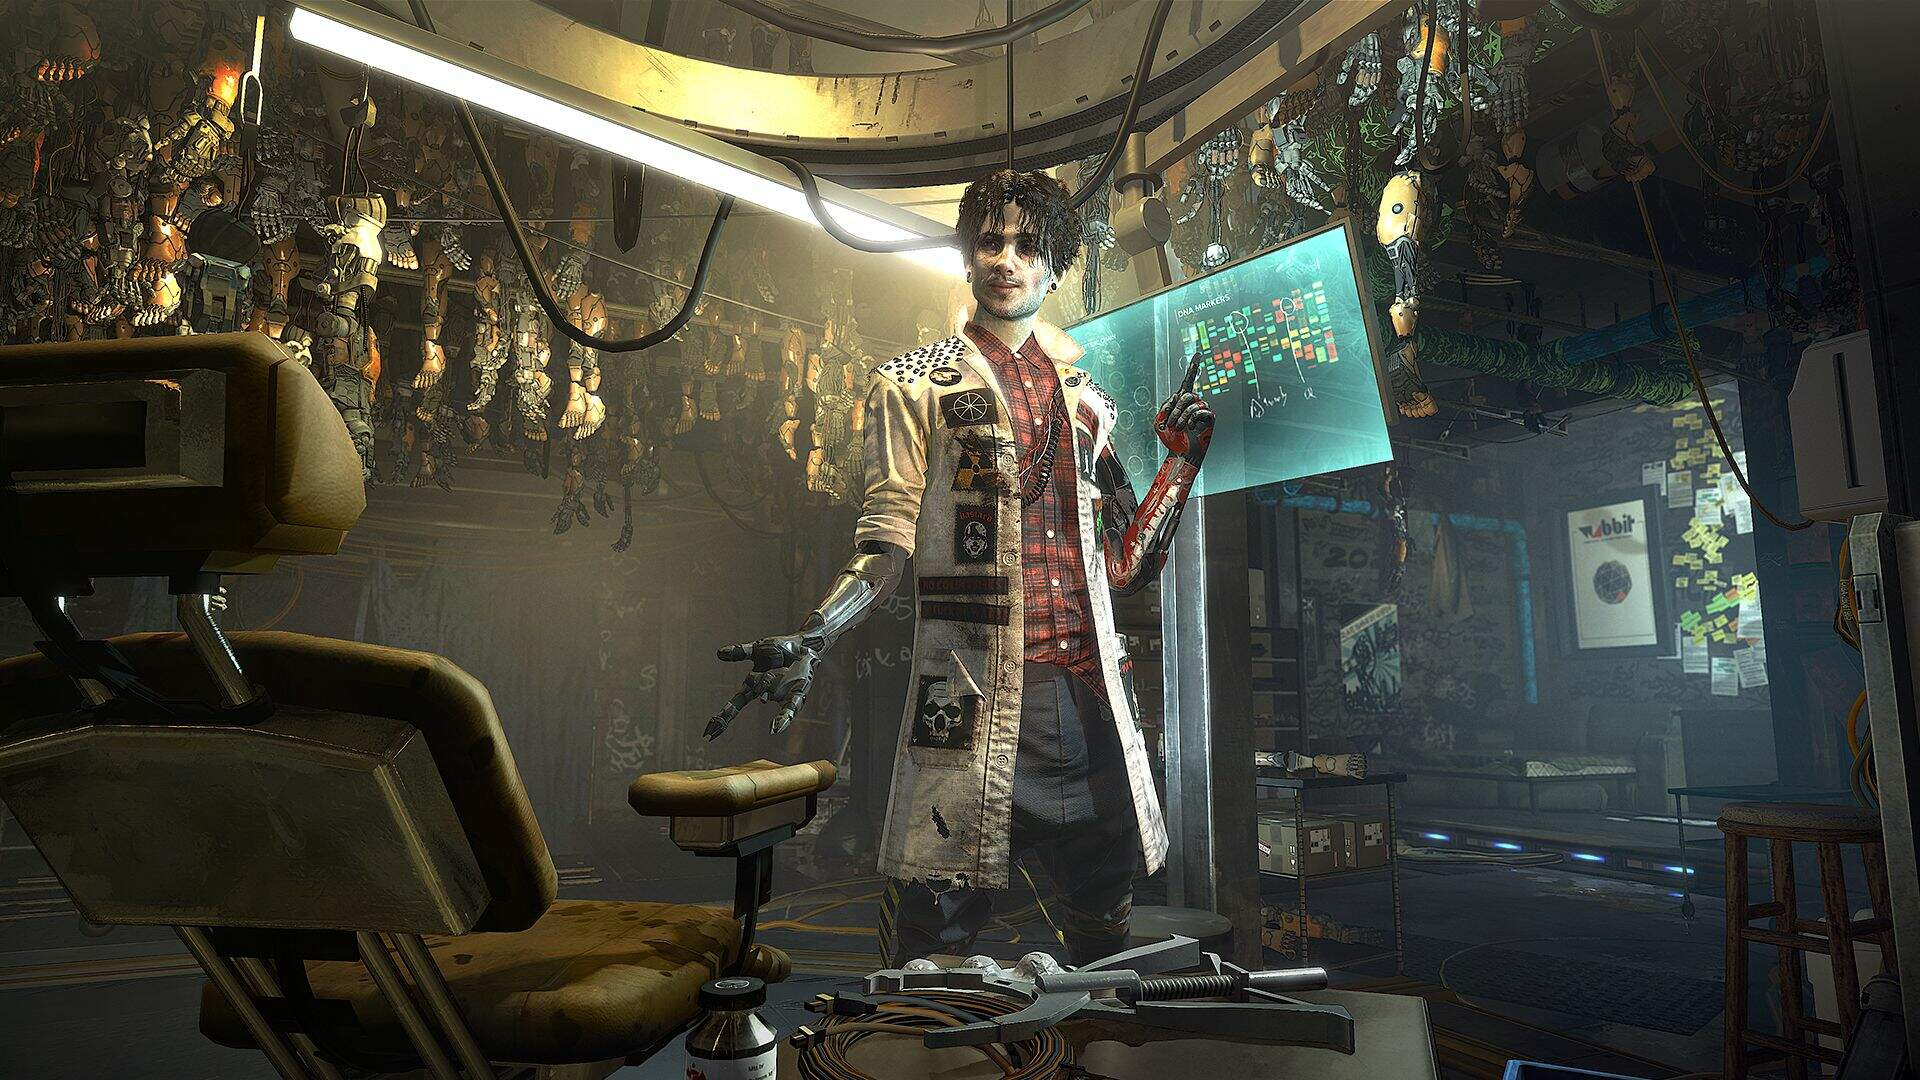 What's Your Favorite Cyberpunk Game?